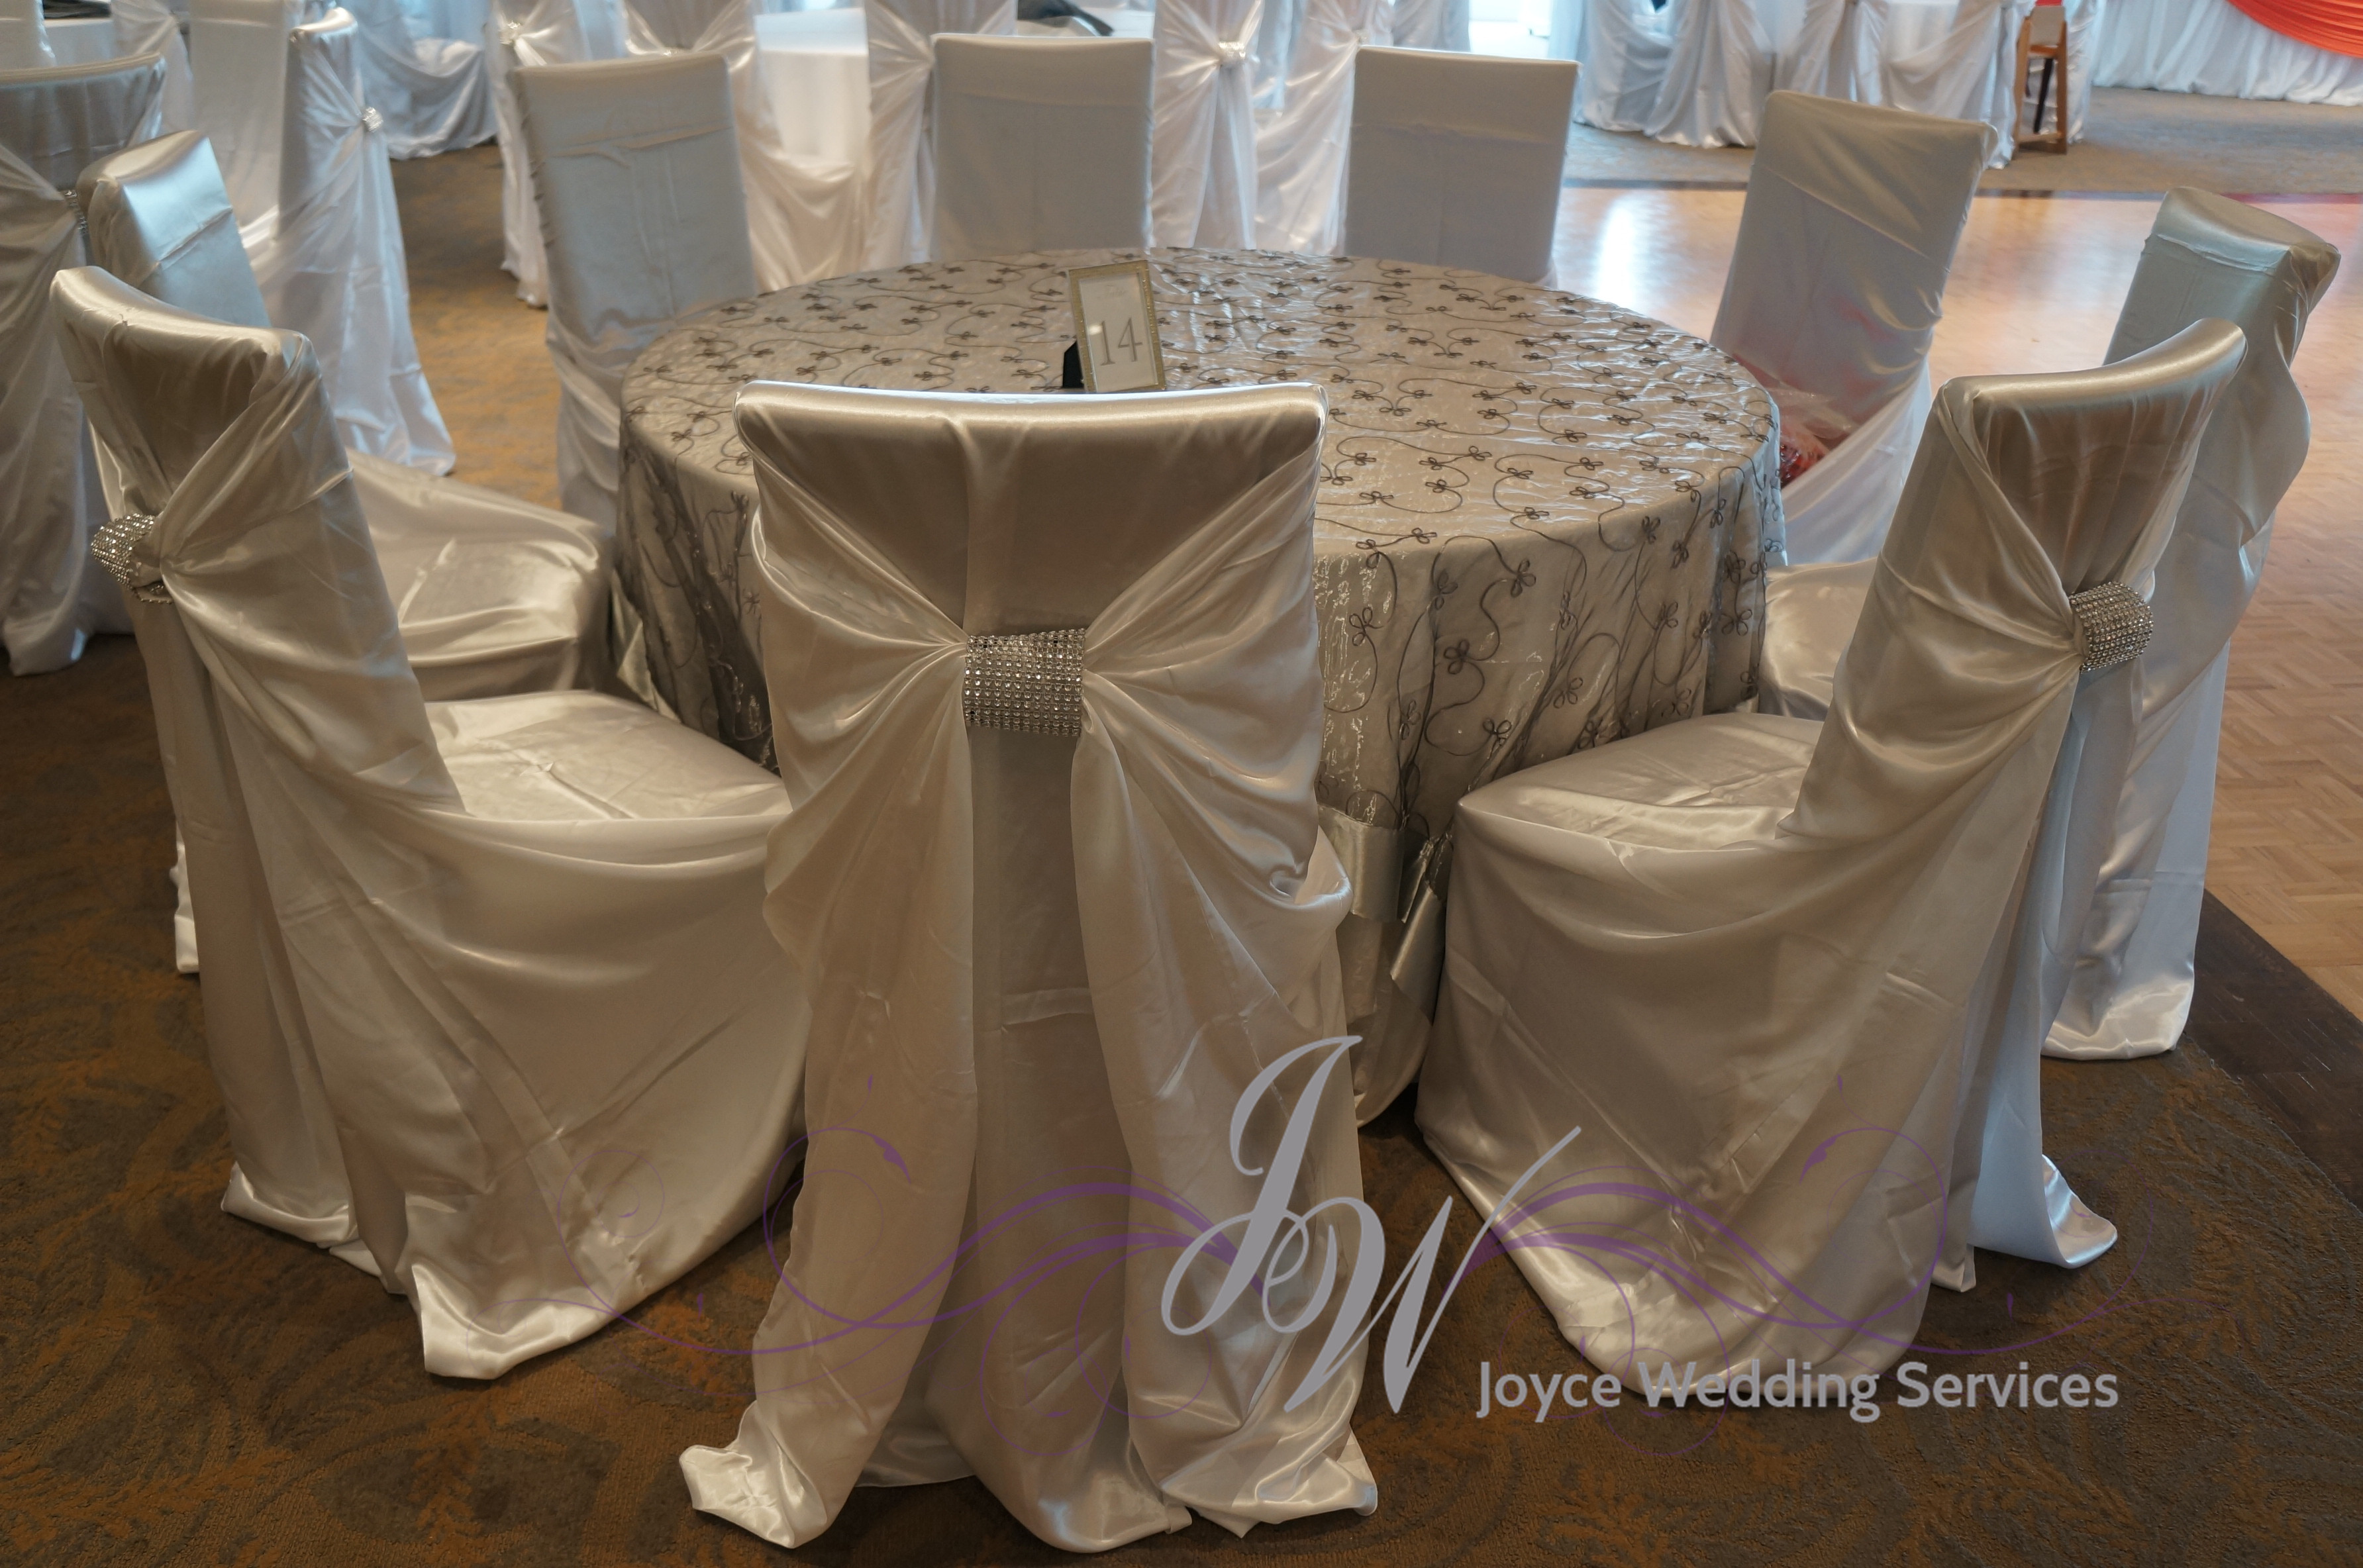 wedding chair covers reddit tennis court chairs joyce services service provides